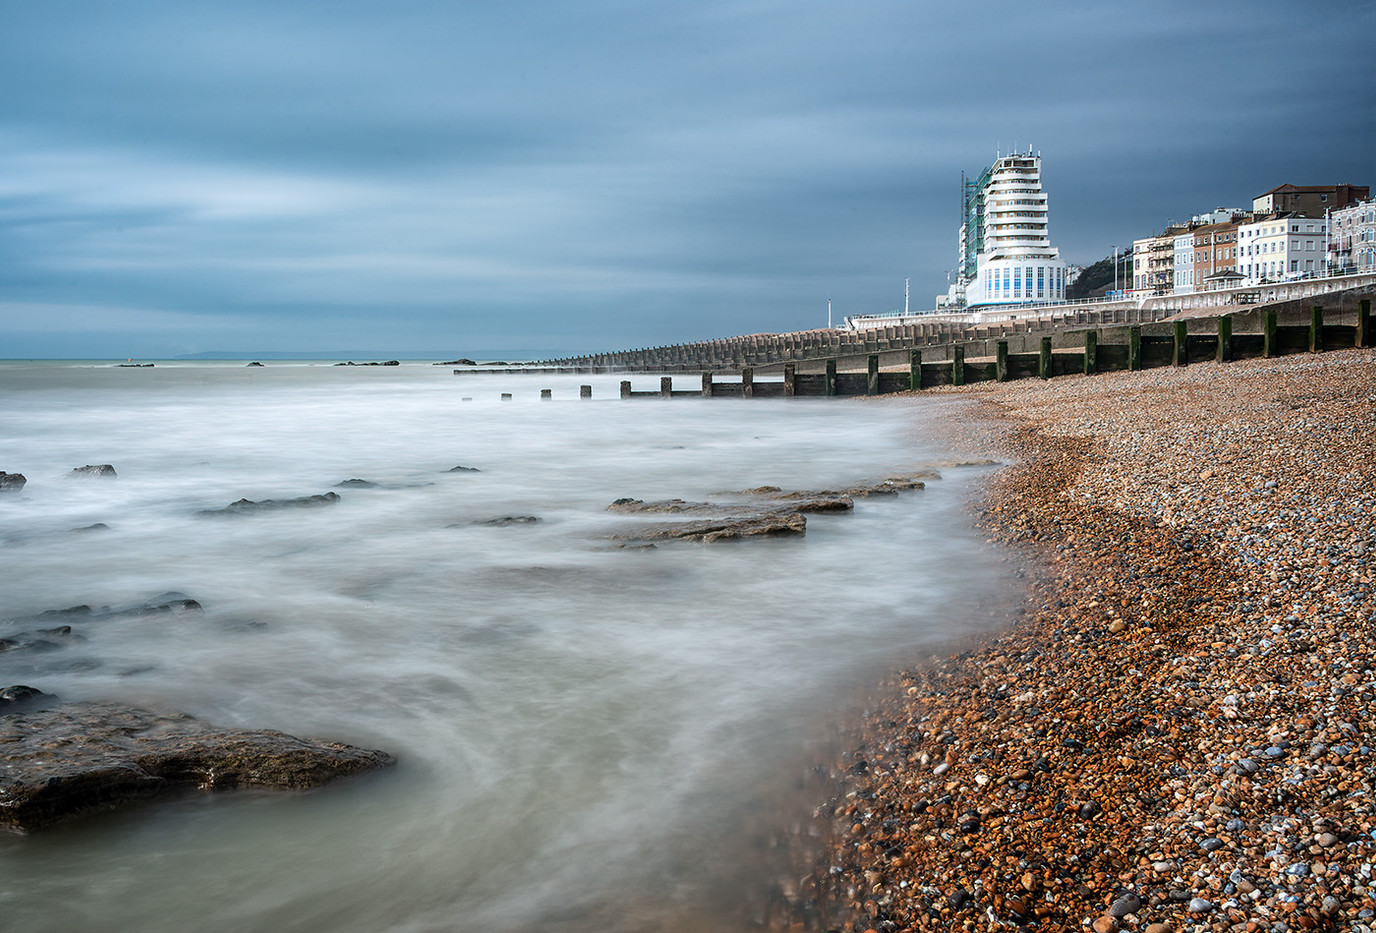 18 HASTINGS SEA FRONT by John Butler